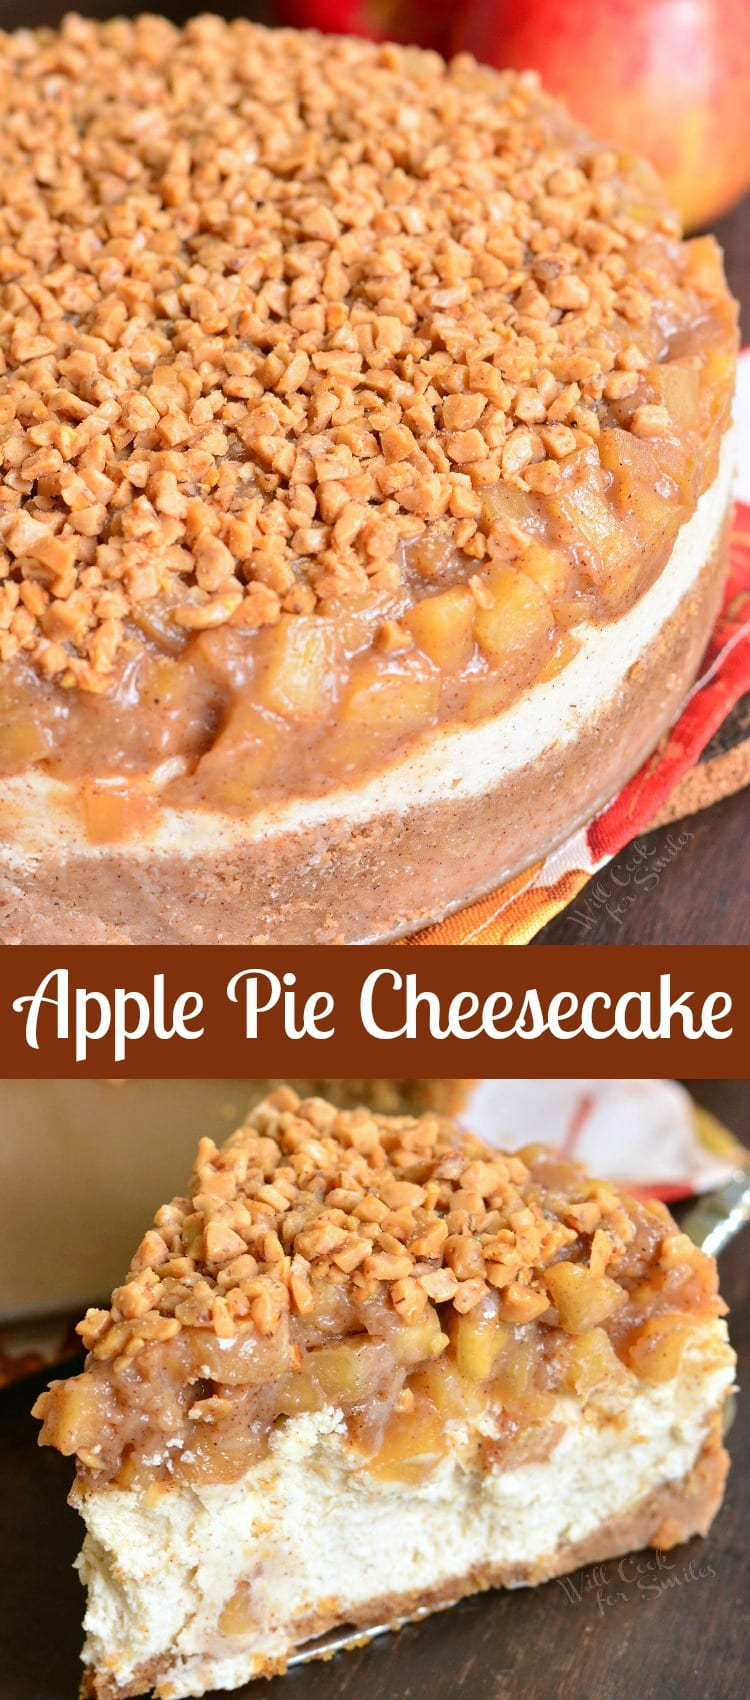 Apple Pie Cheesecake collage